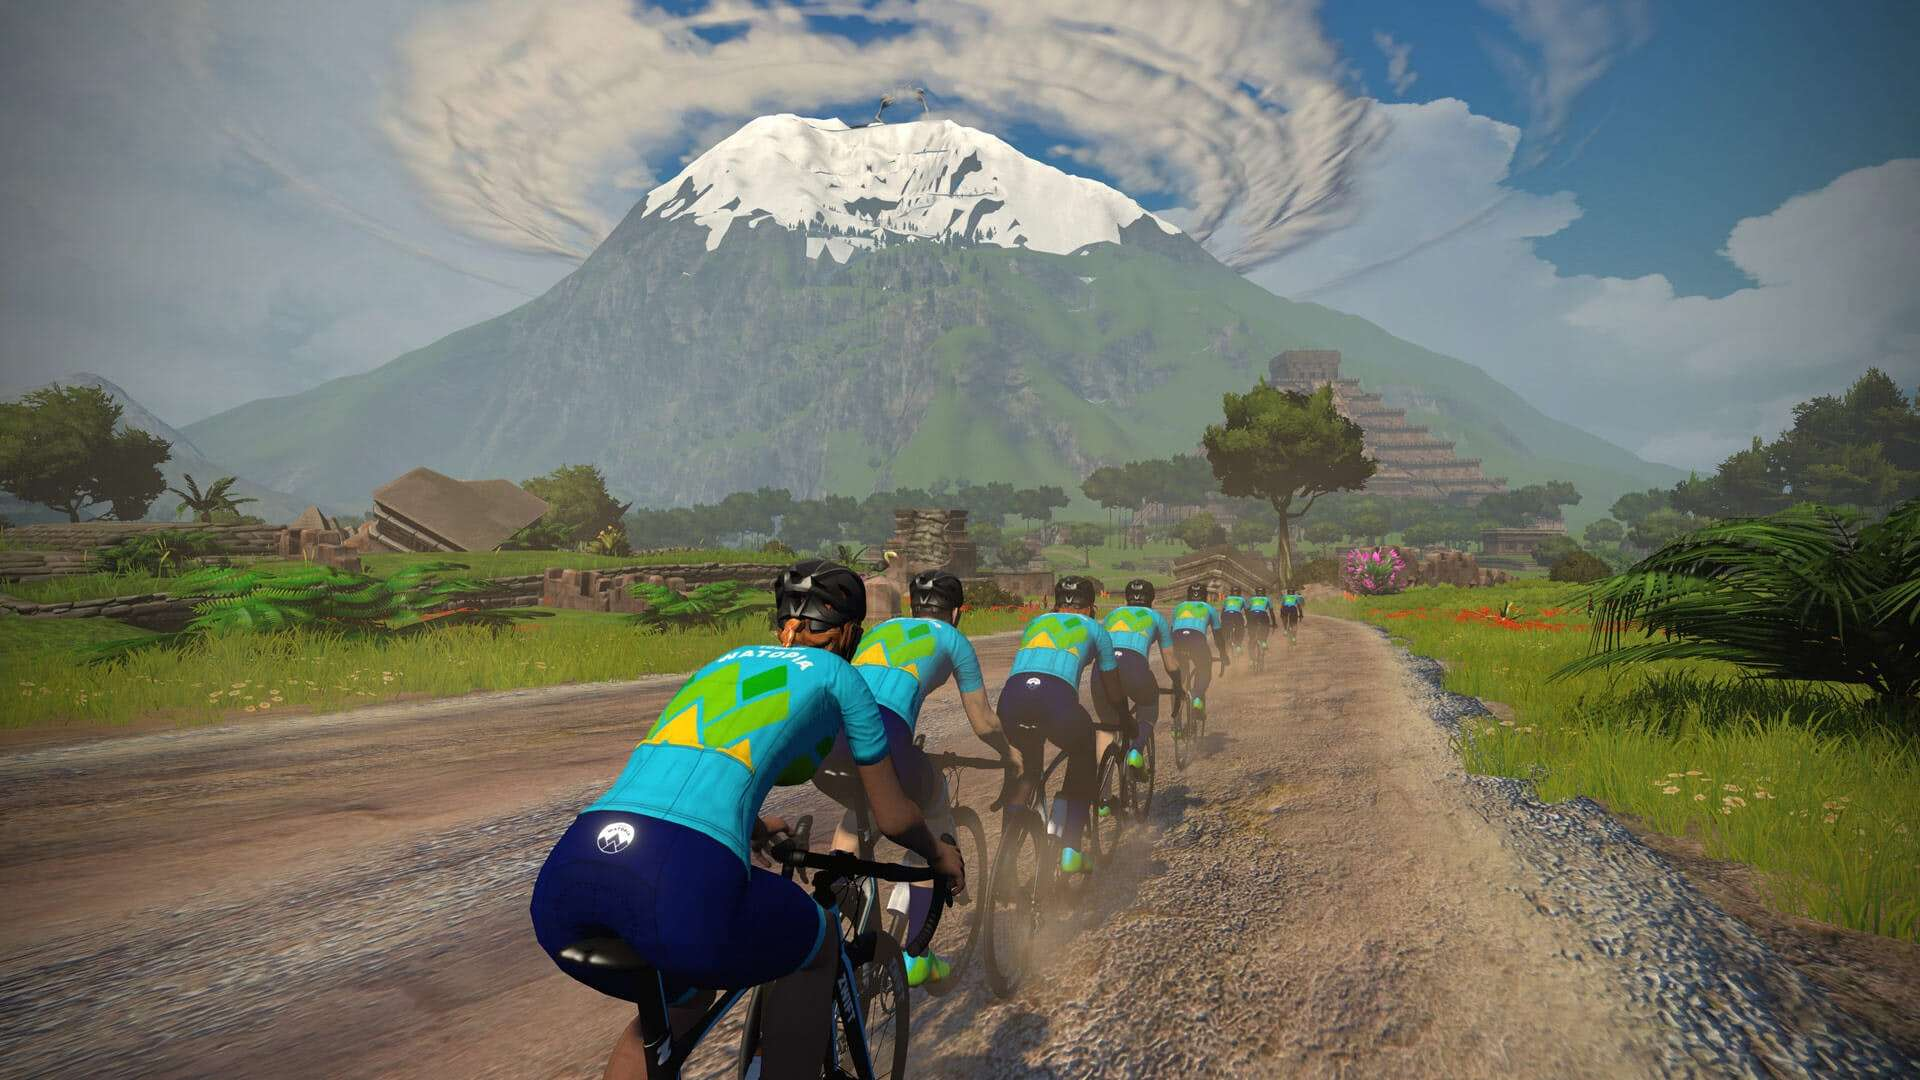 image_20200505_213203 What Old School Cyclist Are You On Zwift?